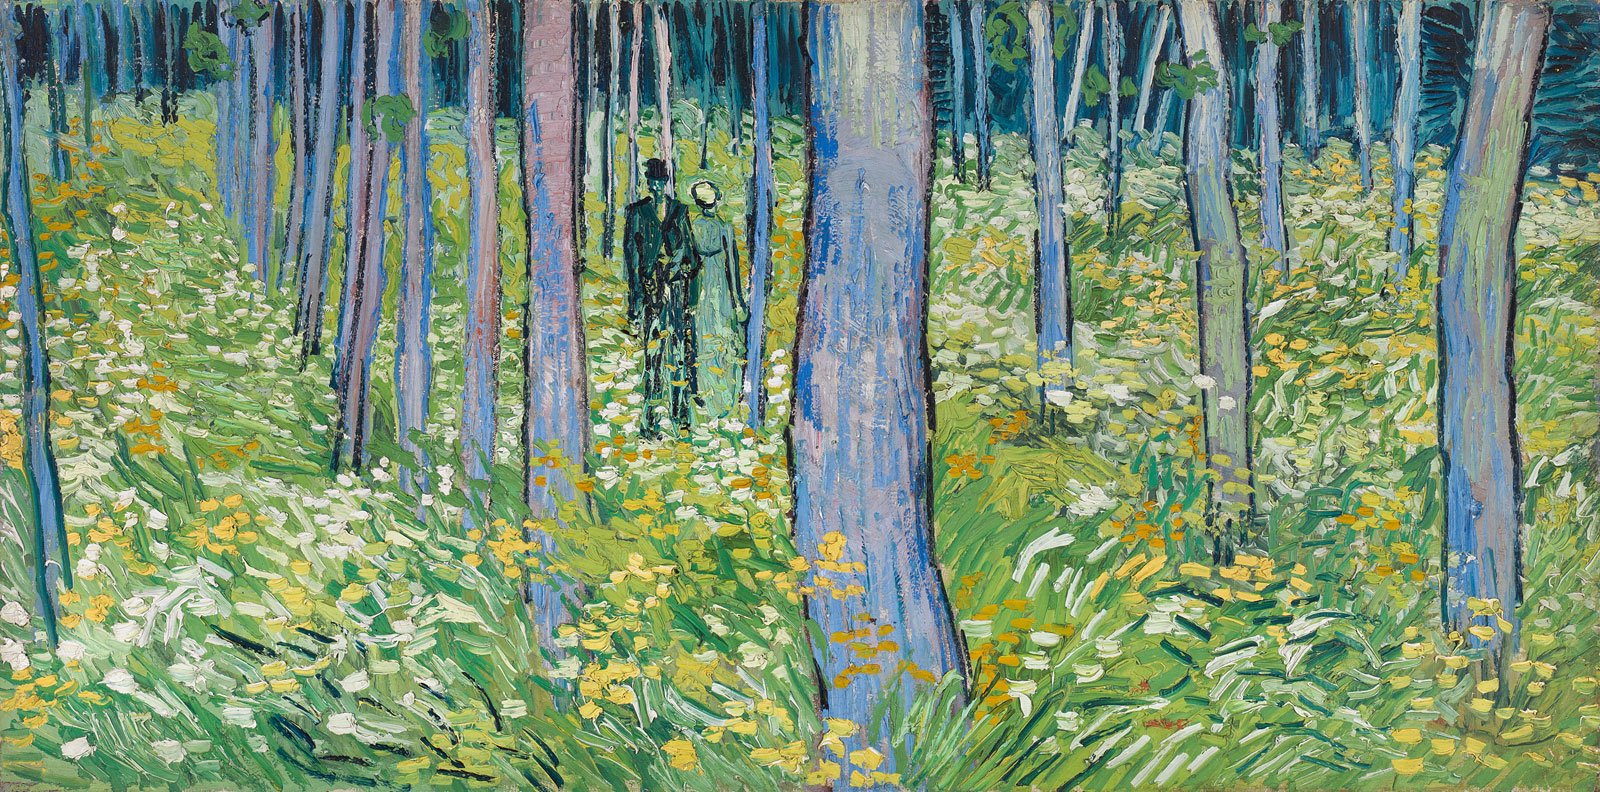 A man and a woman standing in a grassy forest